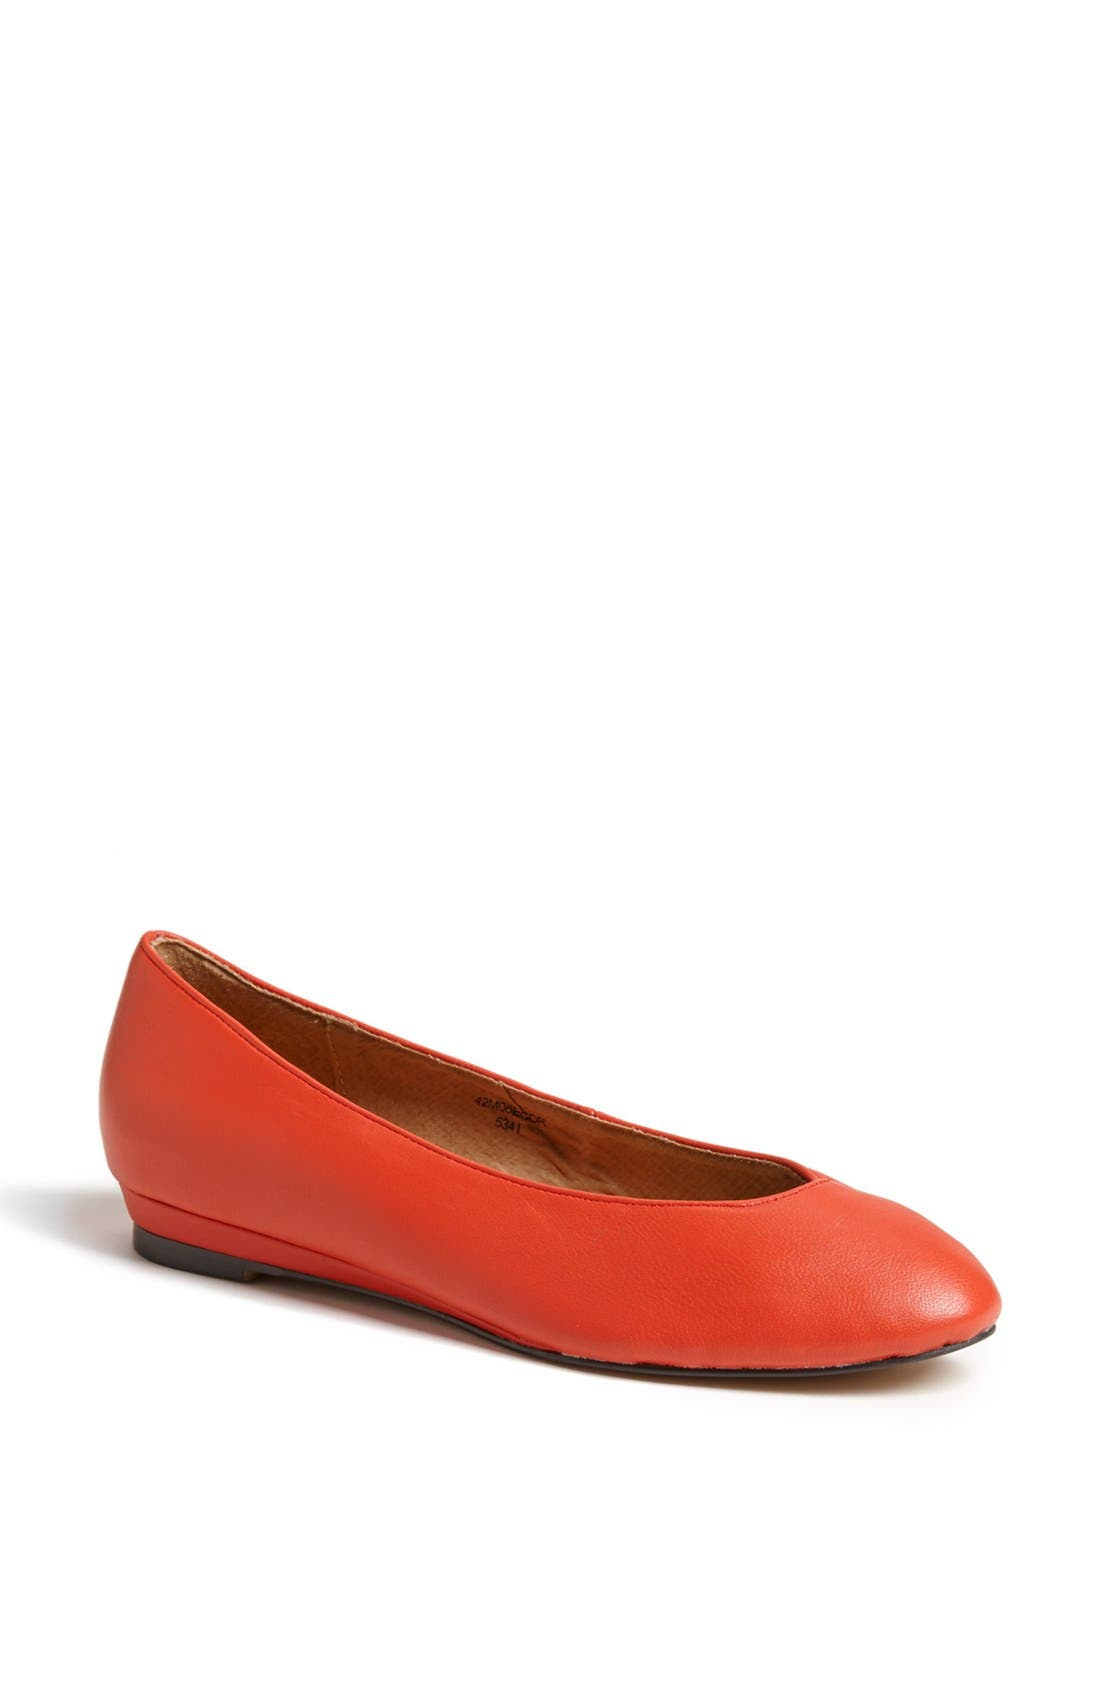 Alternate Image 1 Selected - Topshop 'Mello - Mini Wedge' Court Shoe